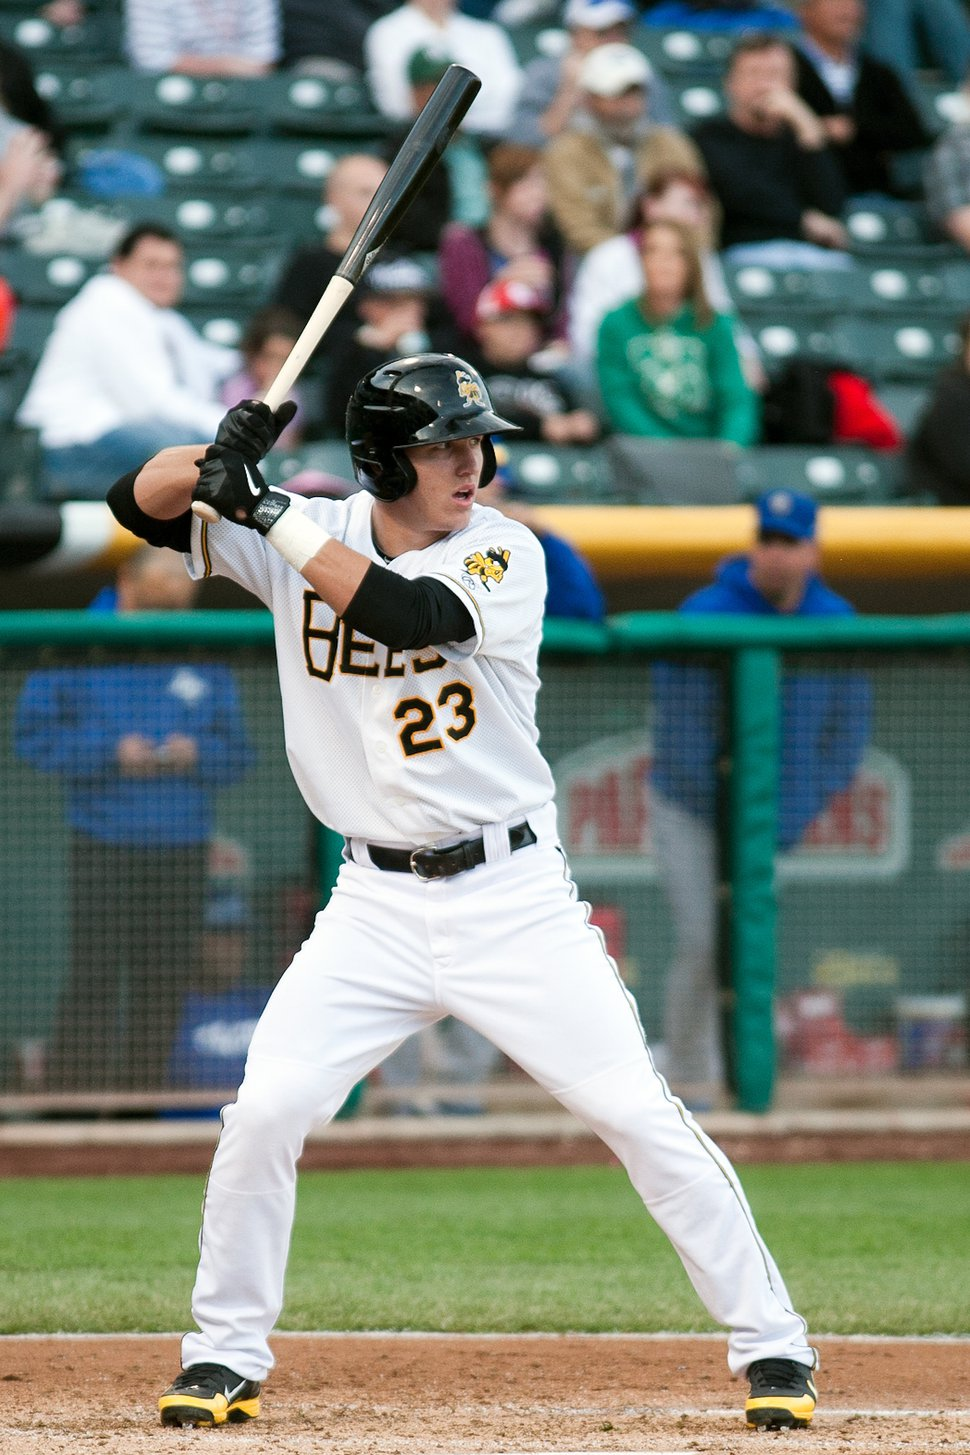 (Photo courtesy of the Salt Lake Bees) Mike Trout gave Salt Lake City fans a glimpse of his talent in 2013, playing the first 20 games of the season for the Bees.